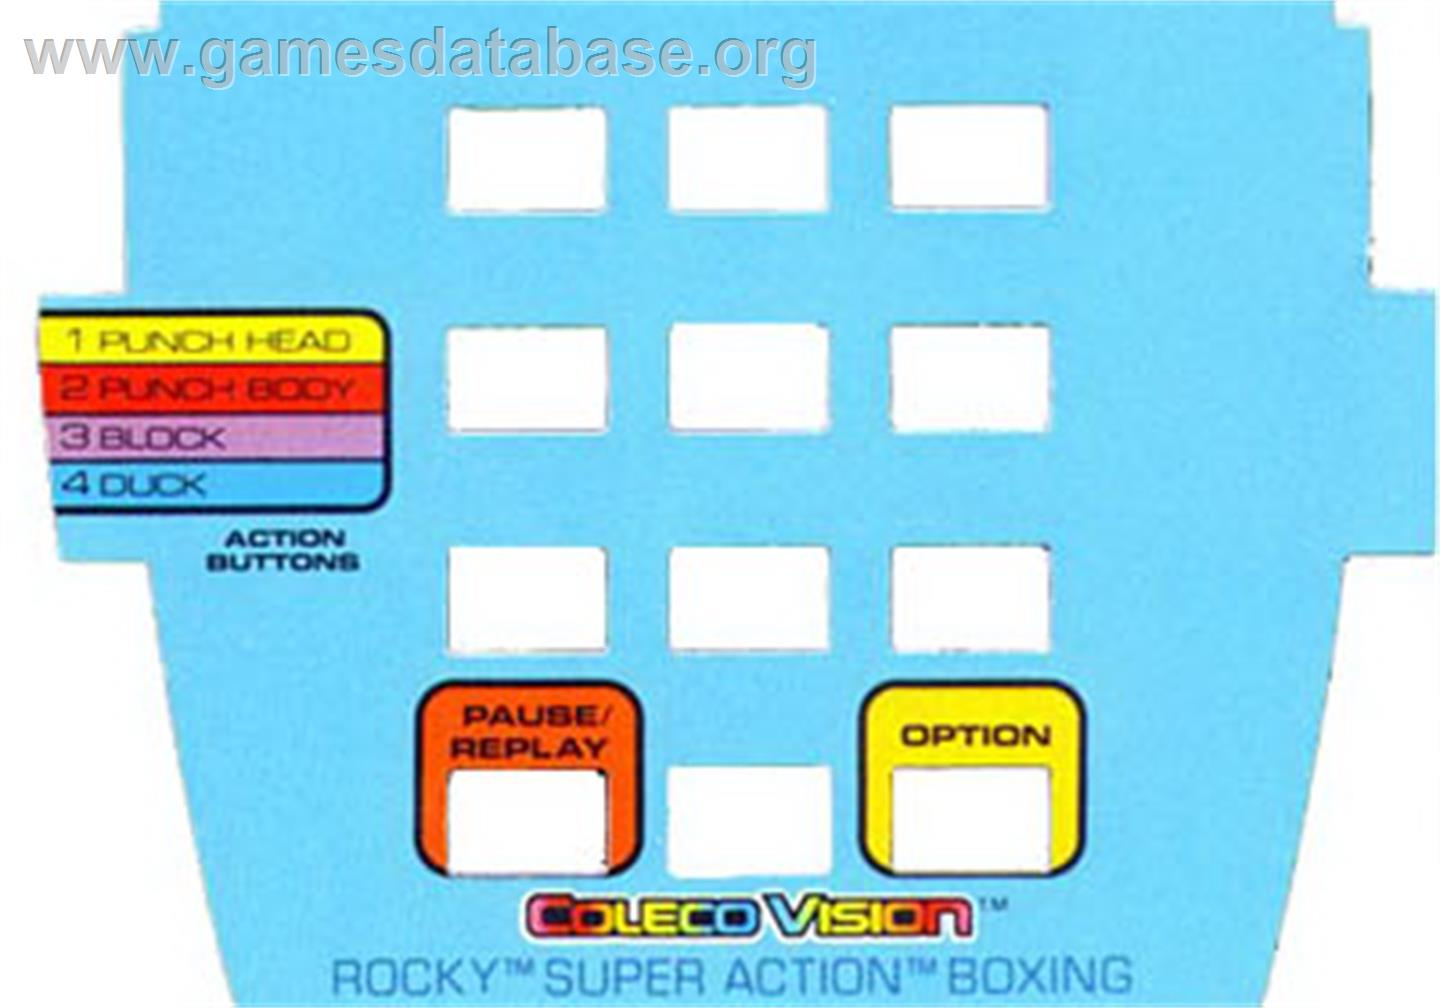 Rocky Super Action Boxing Coleco Vision Games Database